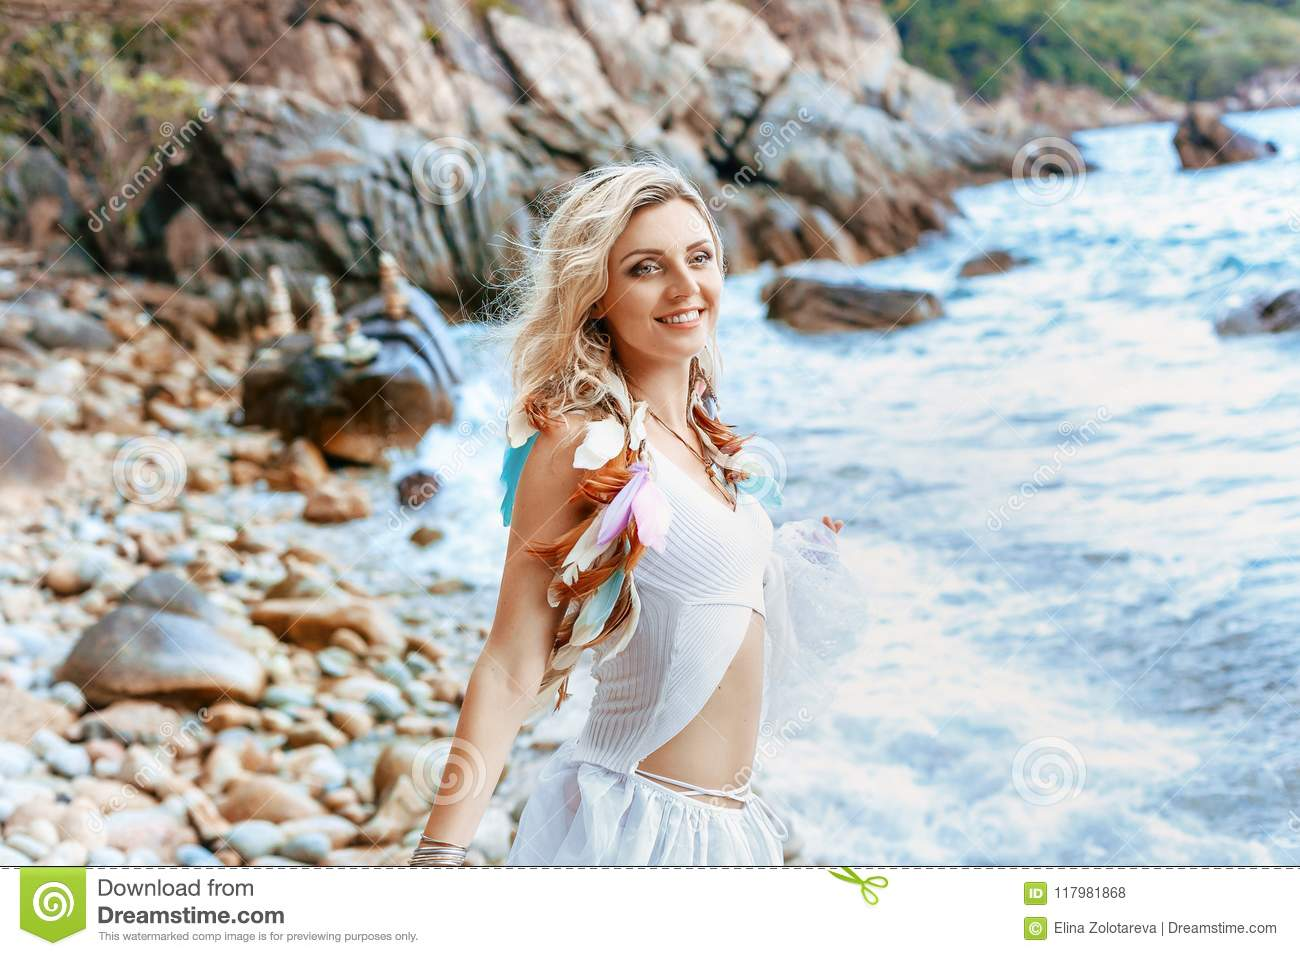 f4b3792bf1 Beautiful Young Boho Style Woman In White Dress On Stone Beach Stock ...